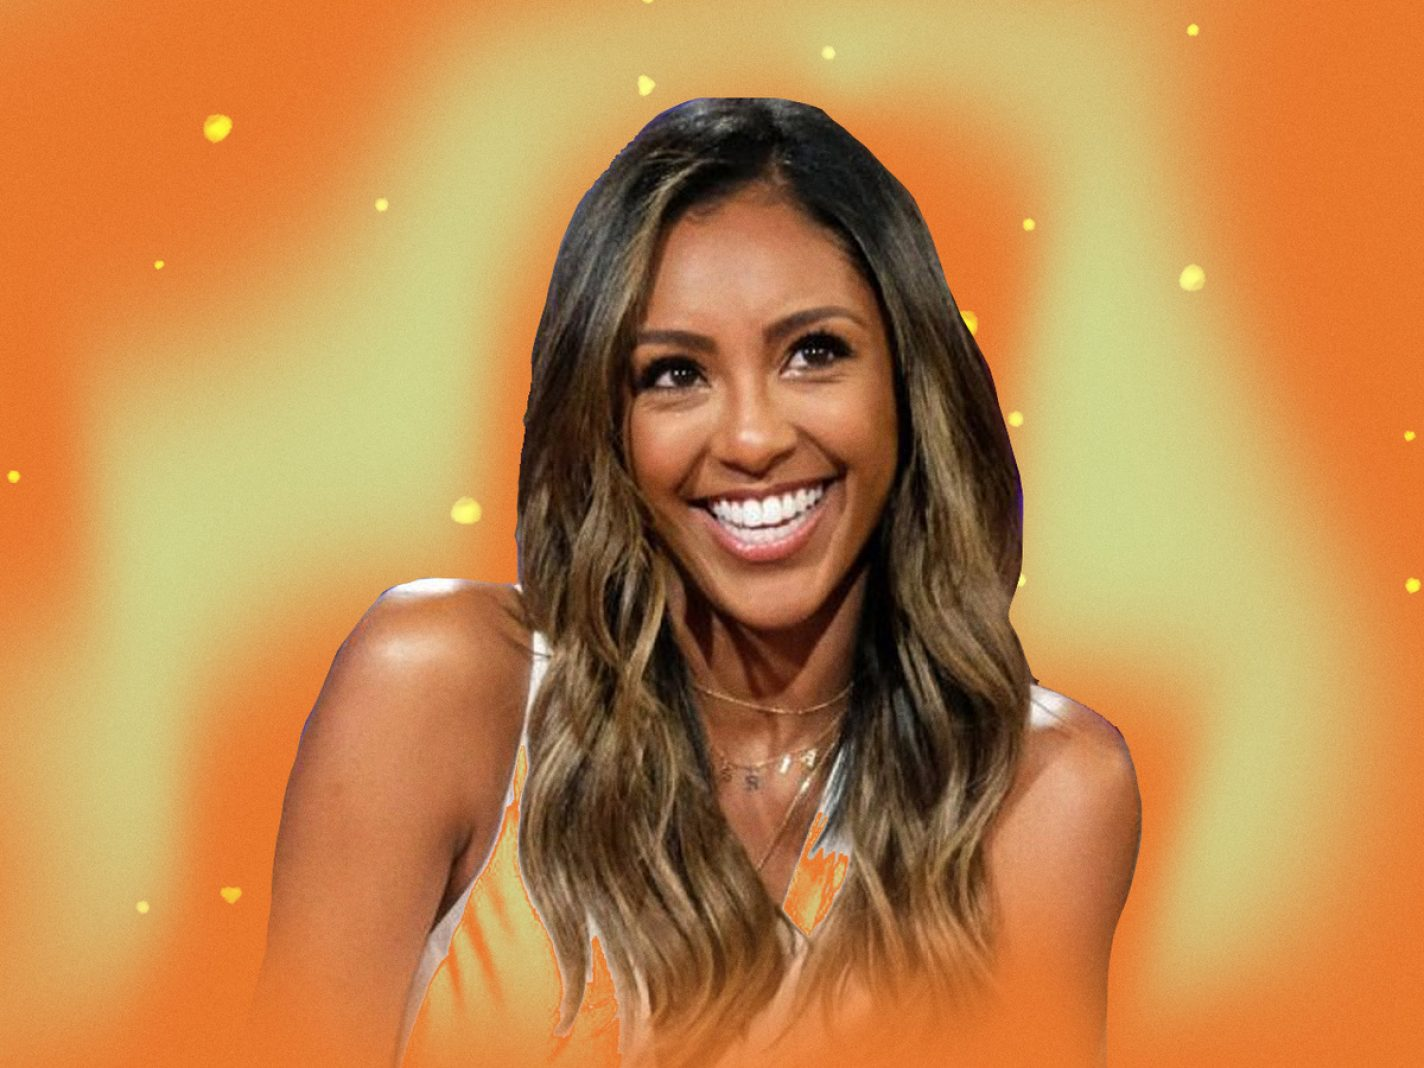 'The Bachelorette' recap: Tayshia's journey ends with and engagement to Zac